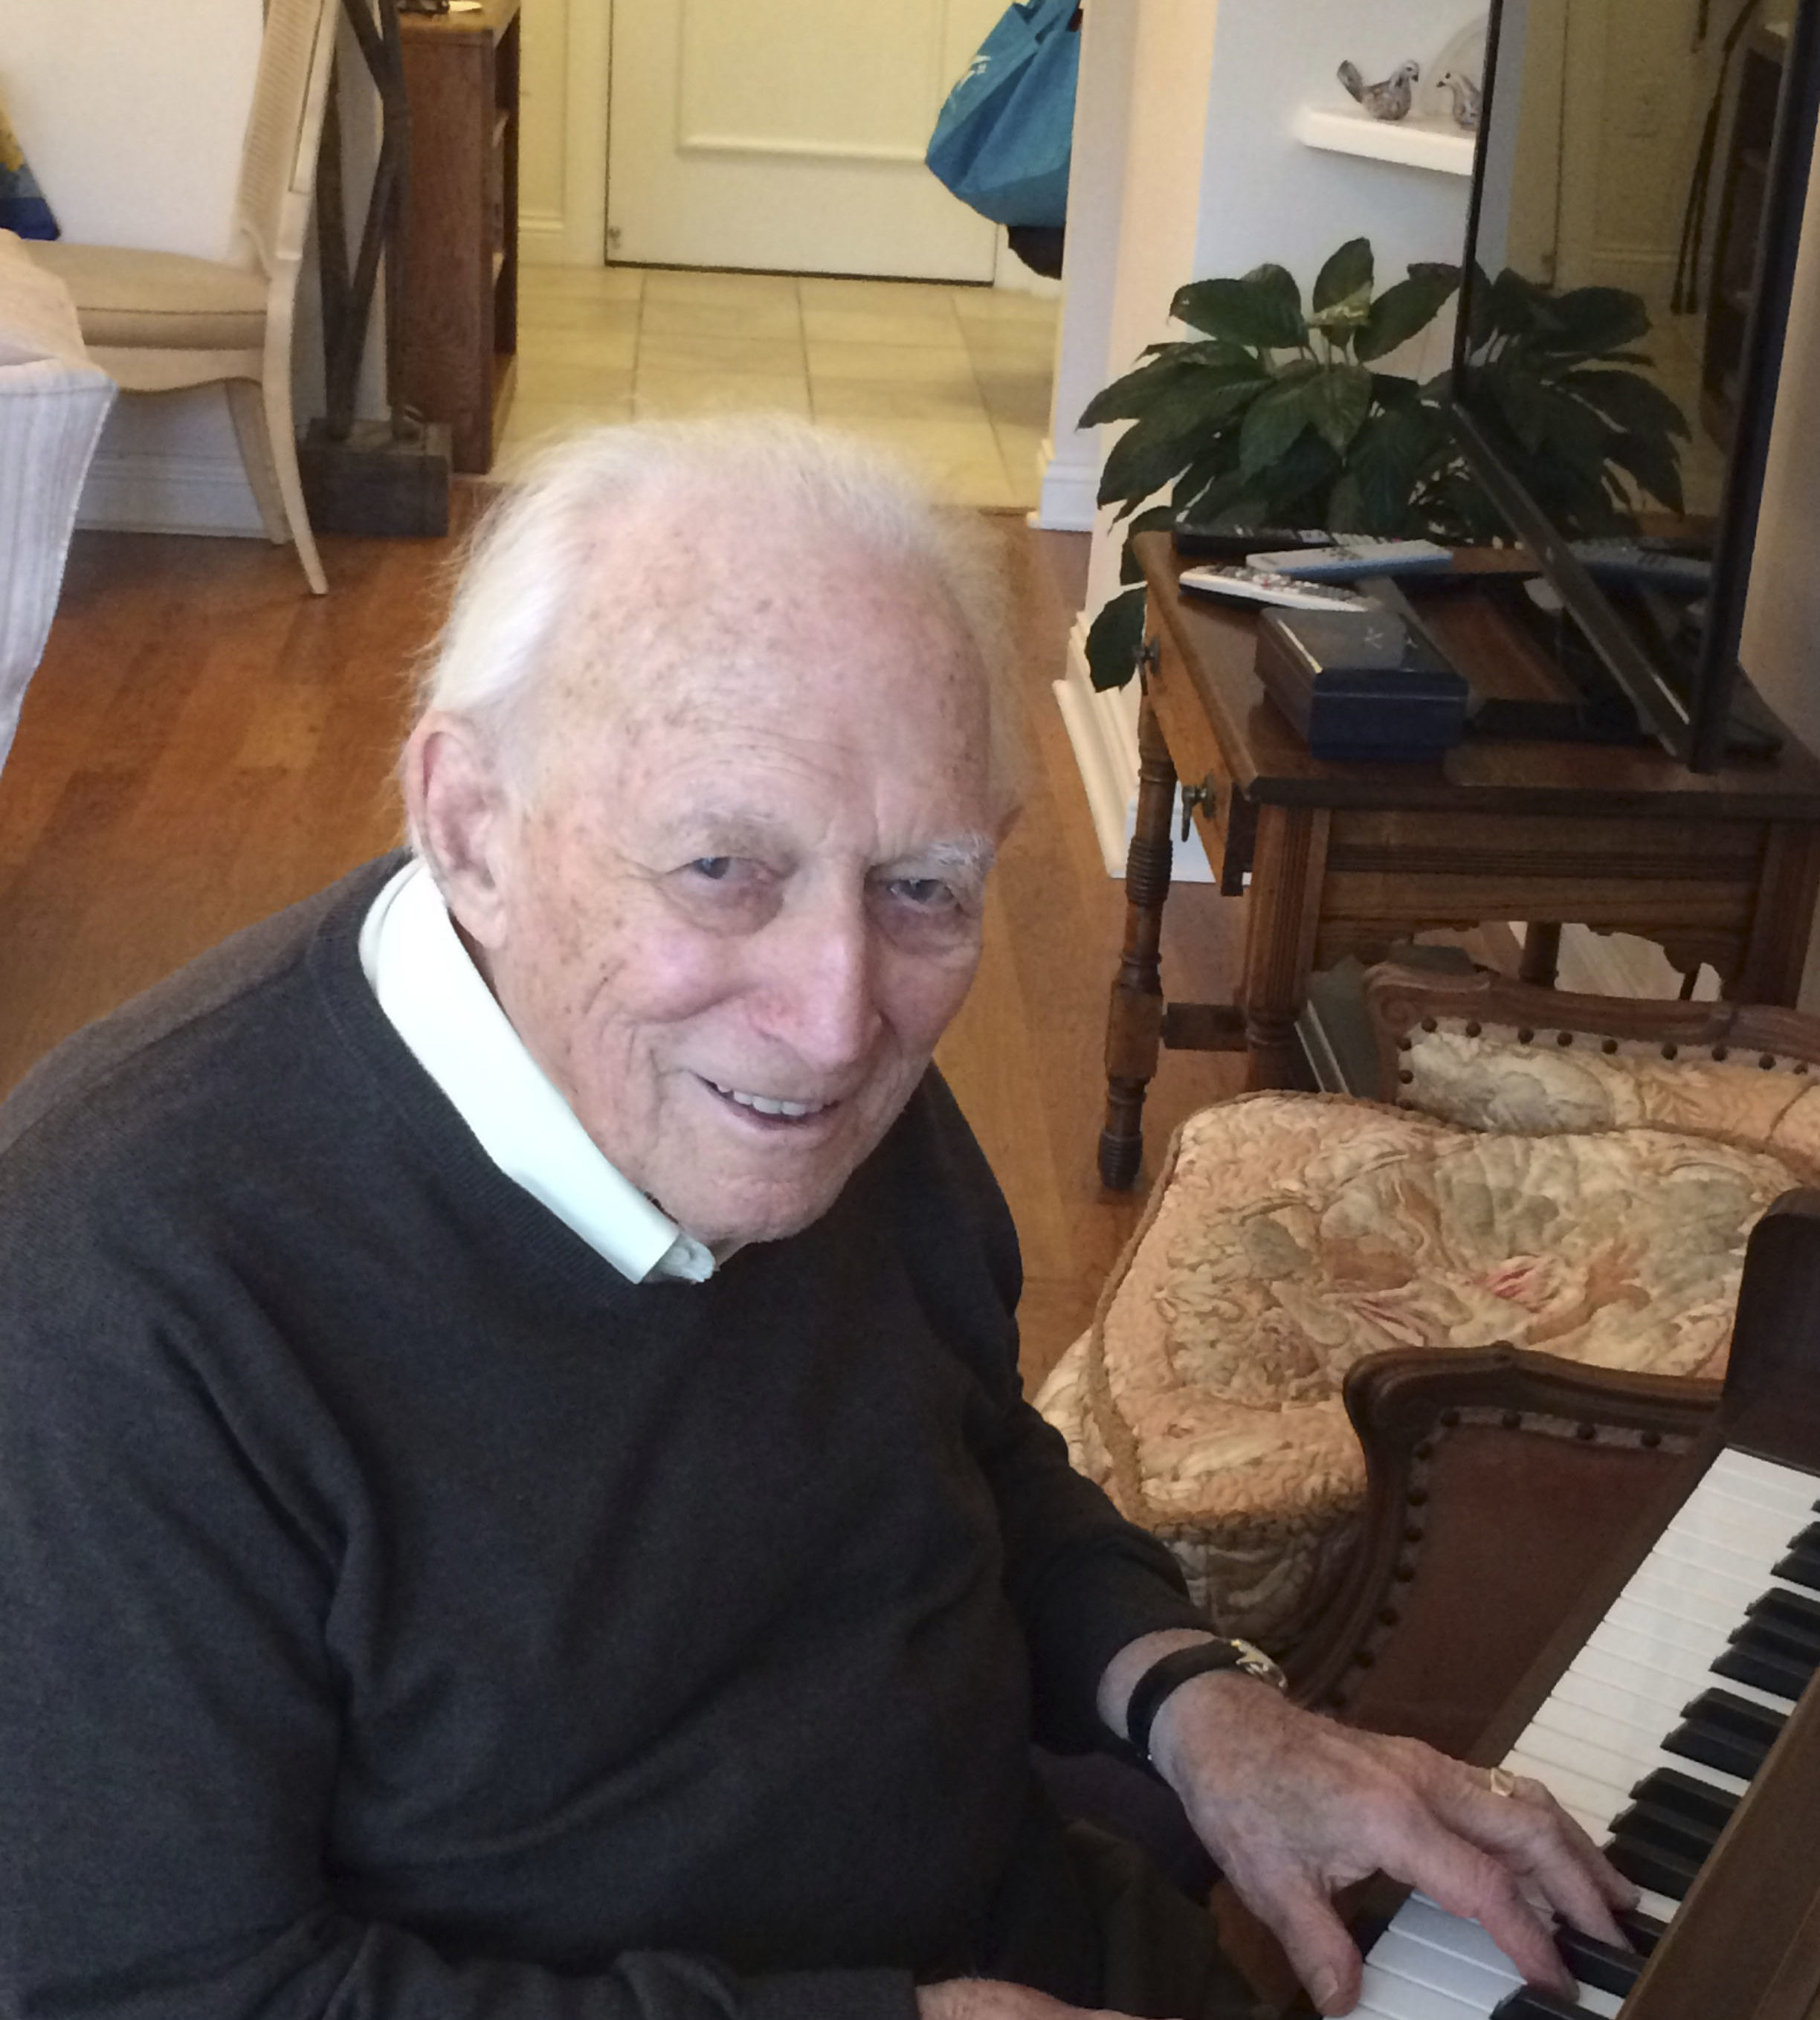 Bernie Marcus started playing the piano at age 80. (Photo/Rob Gloster)